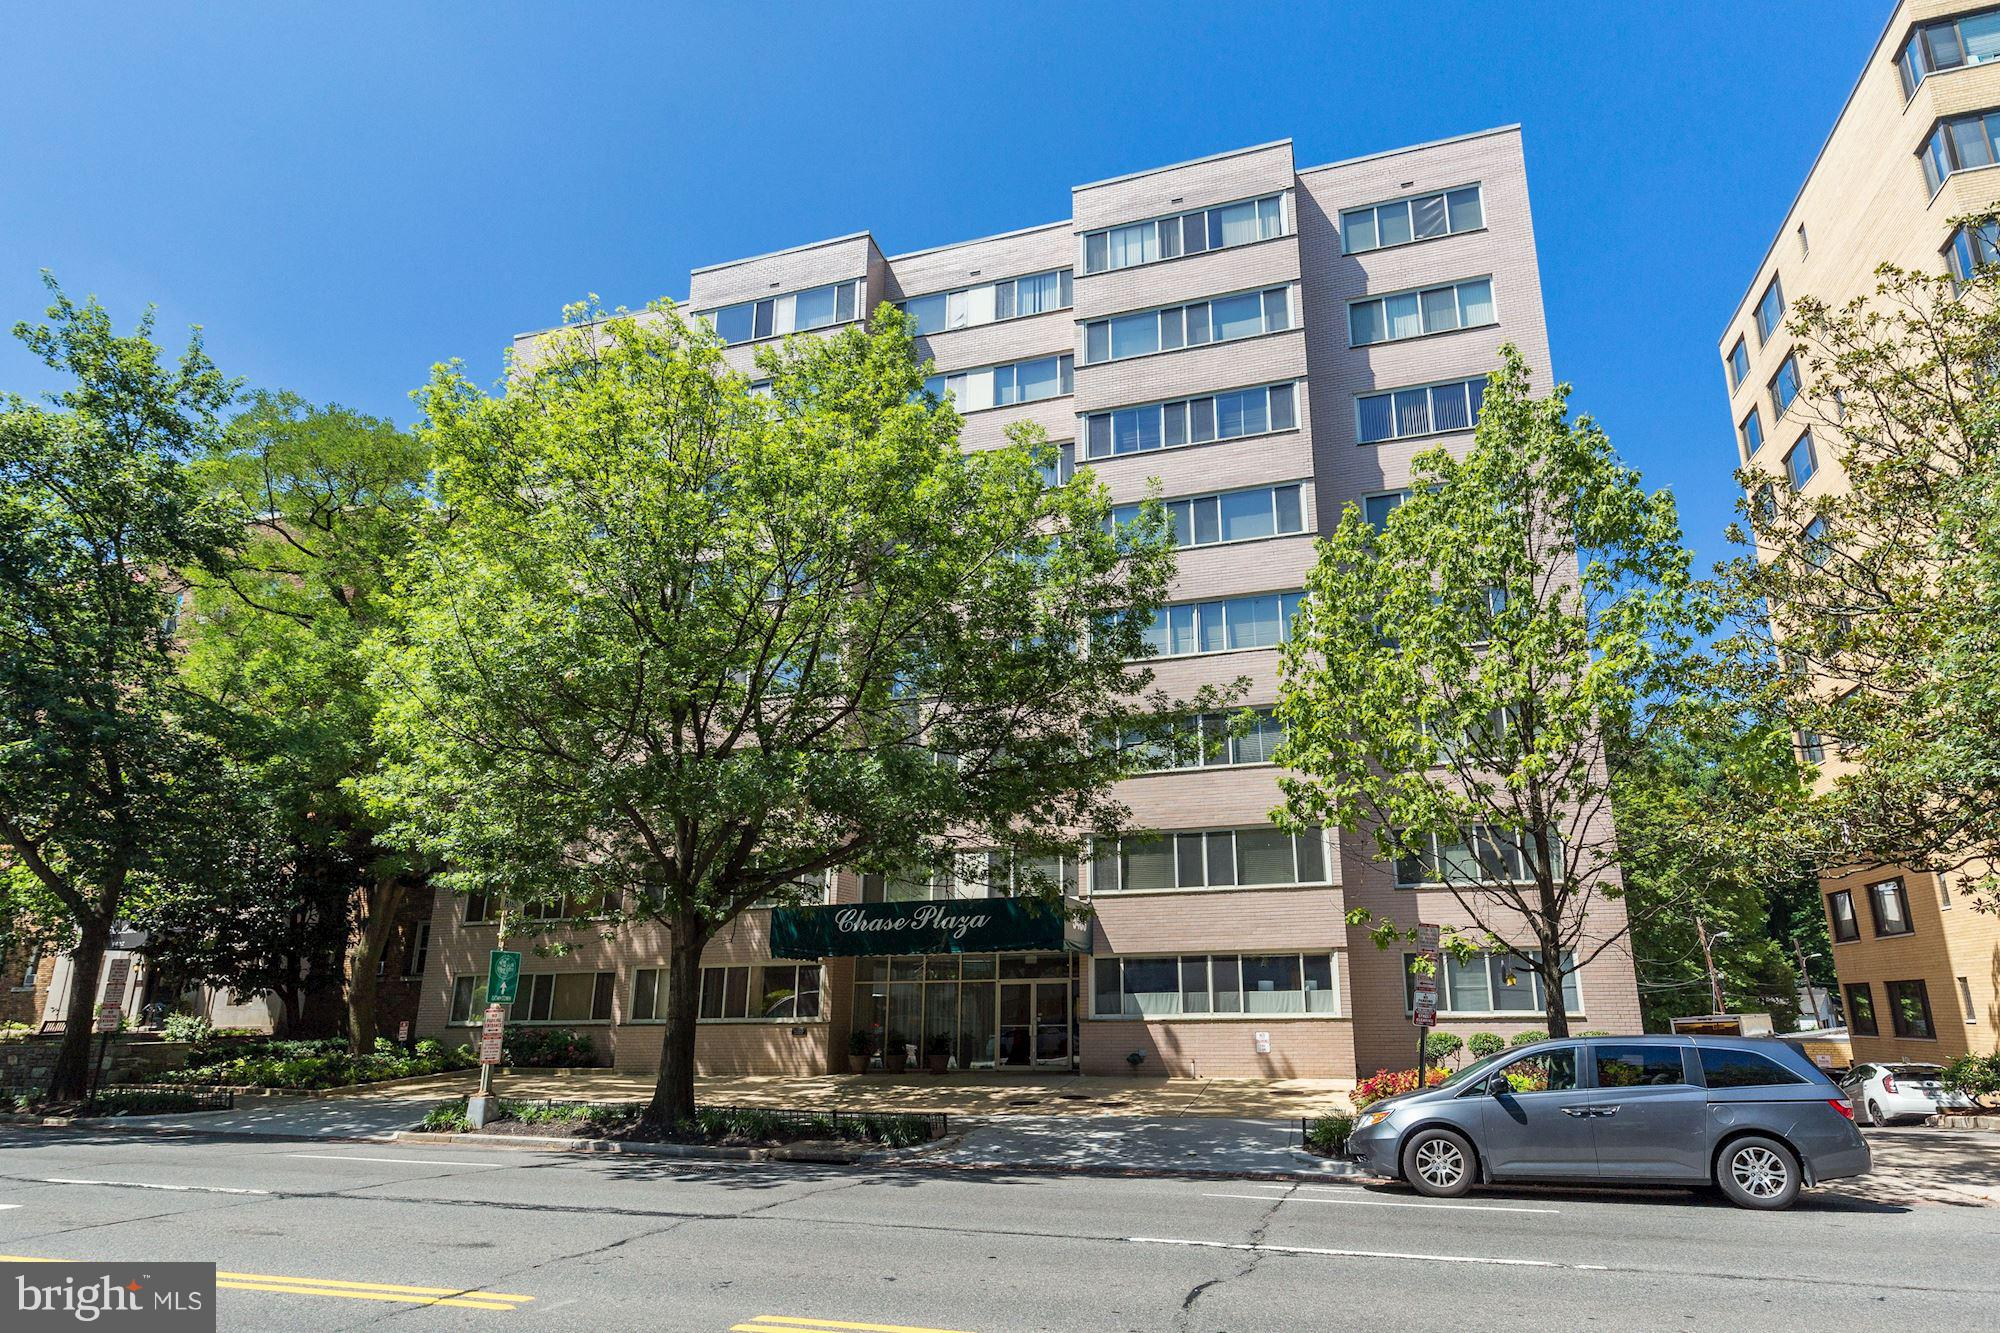 5406 CONNECTICUT AVENUE NW 206, WASHINGTON, DC 20015